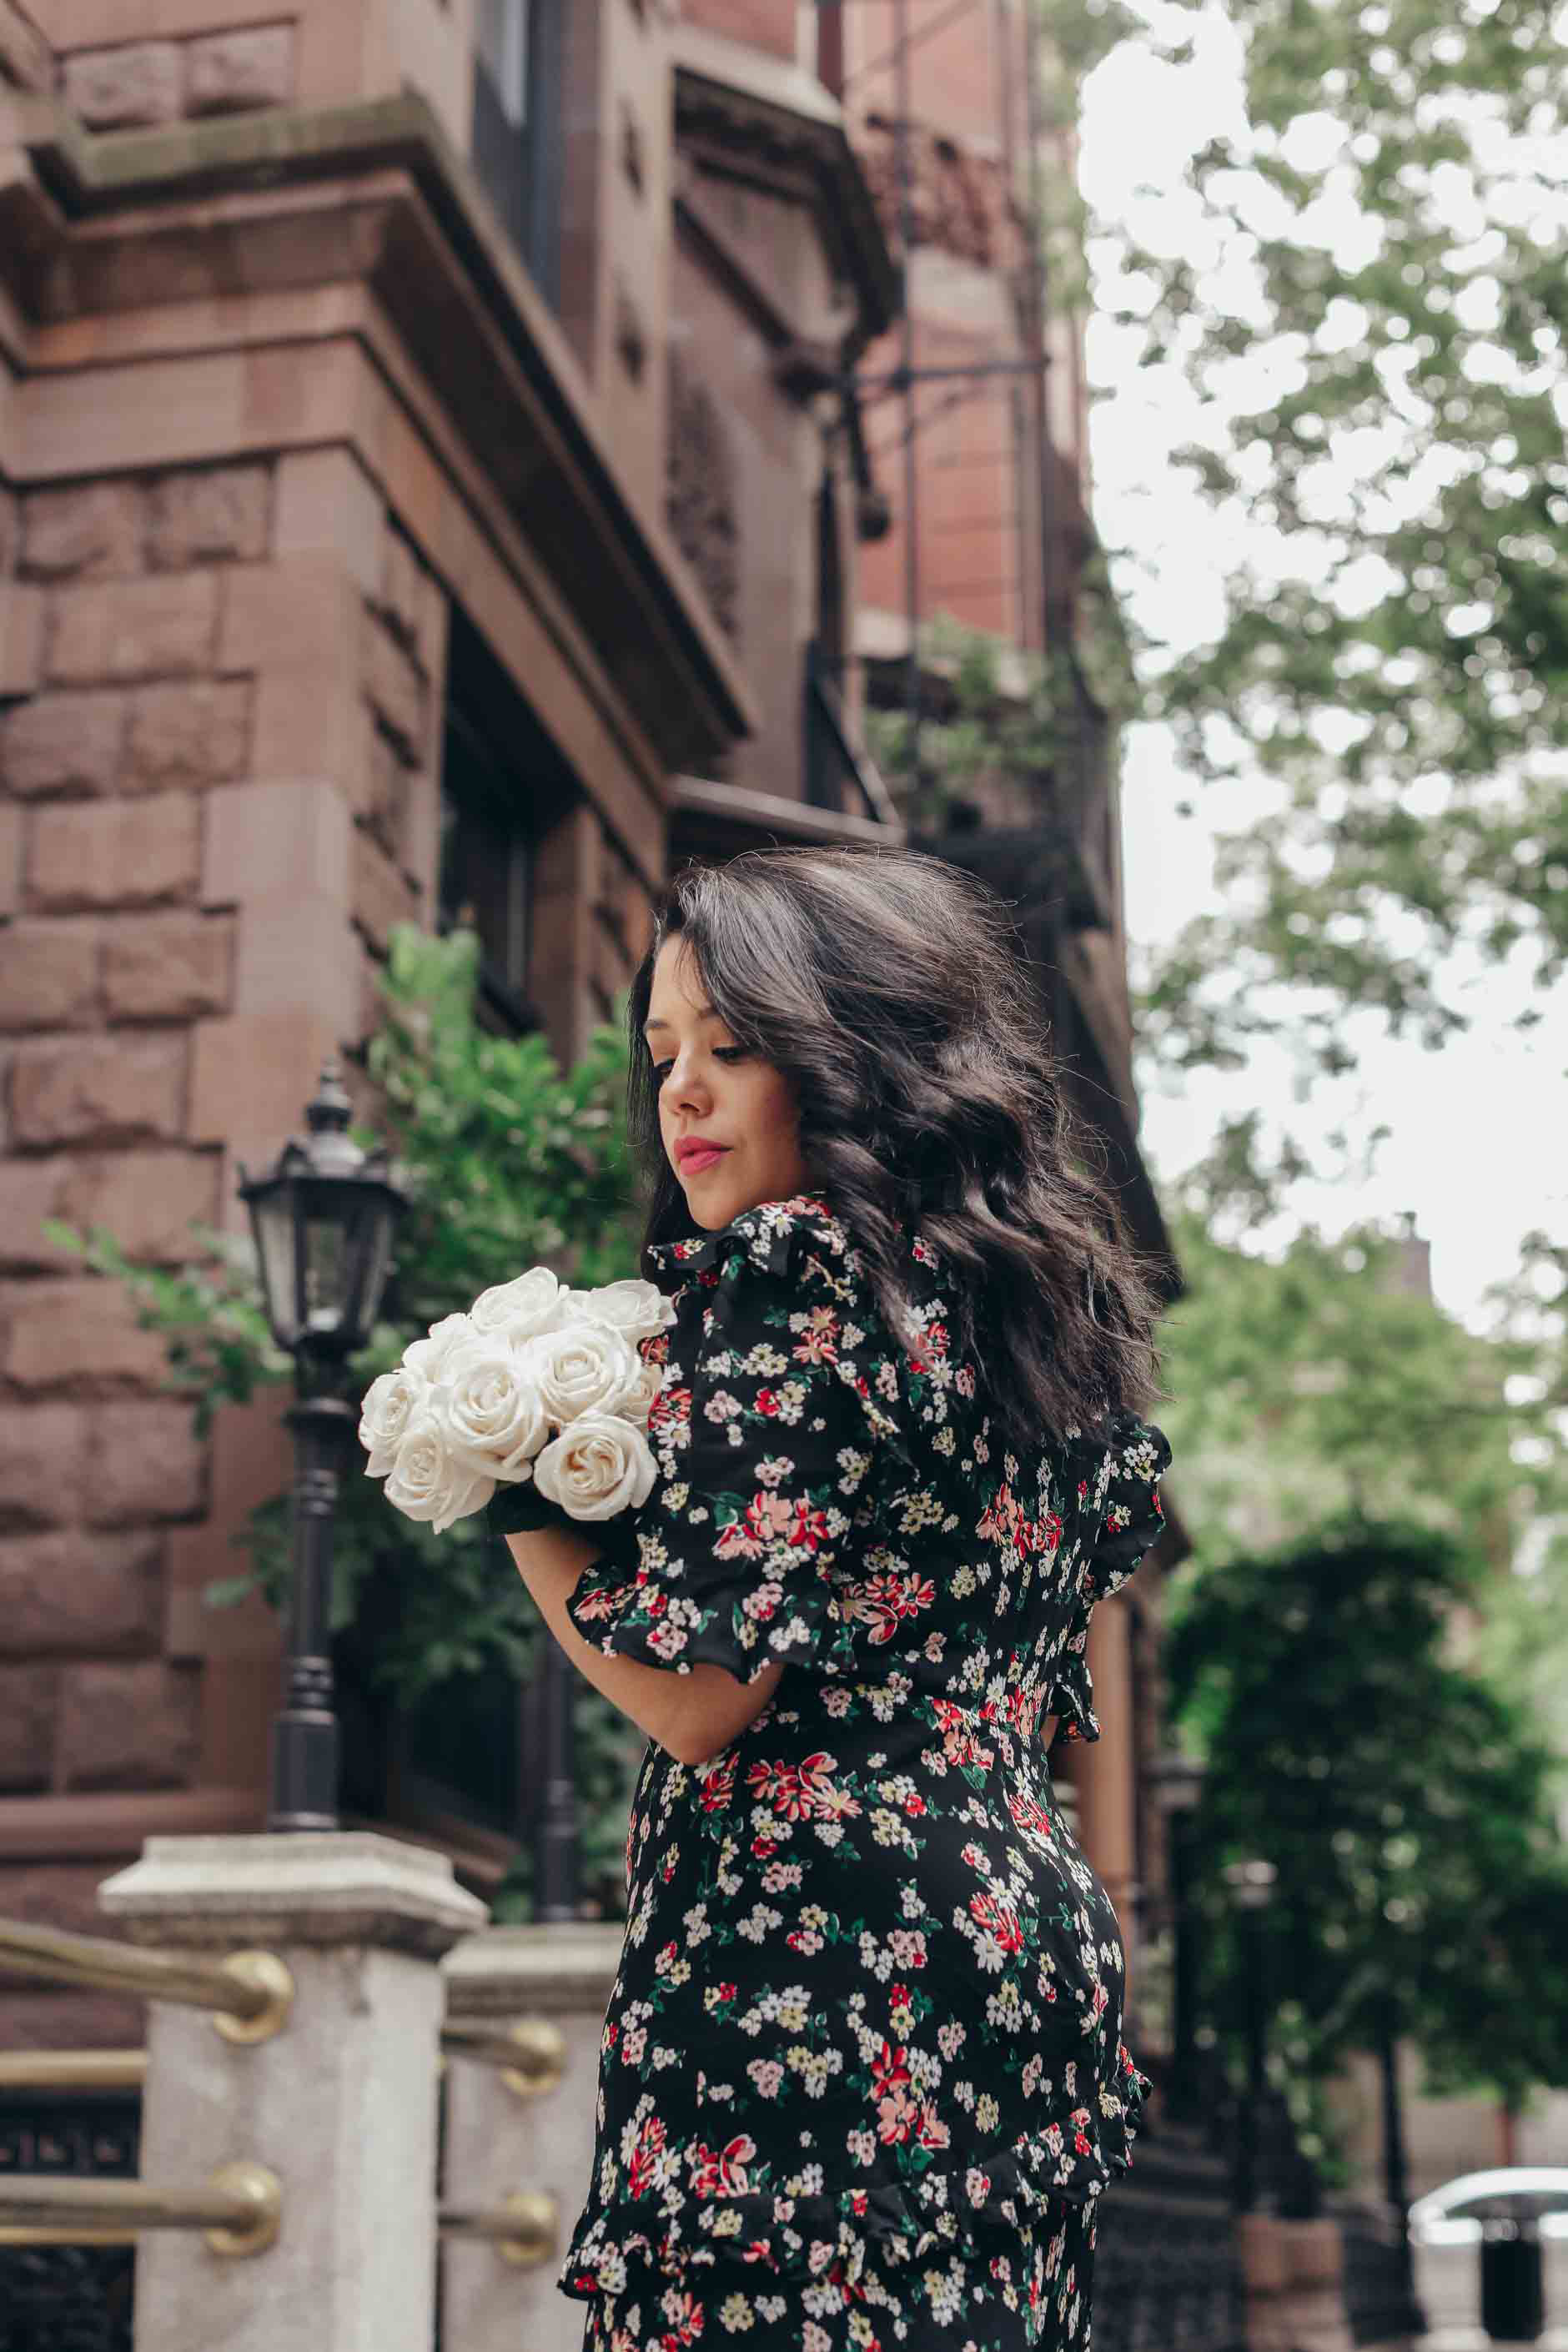 naty michele holding white roses in a floral dress